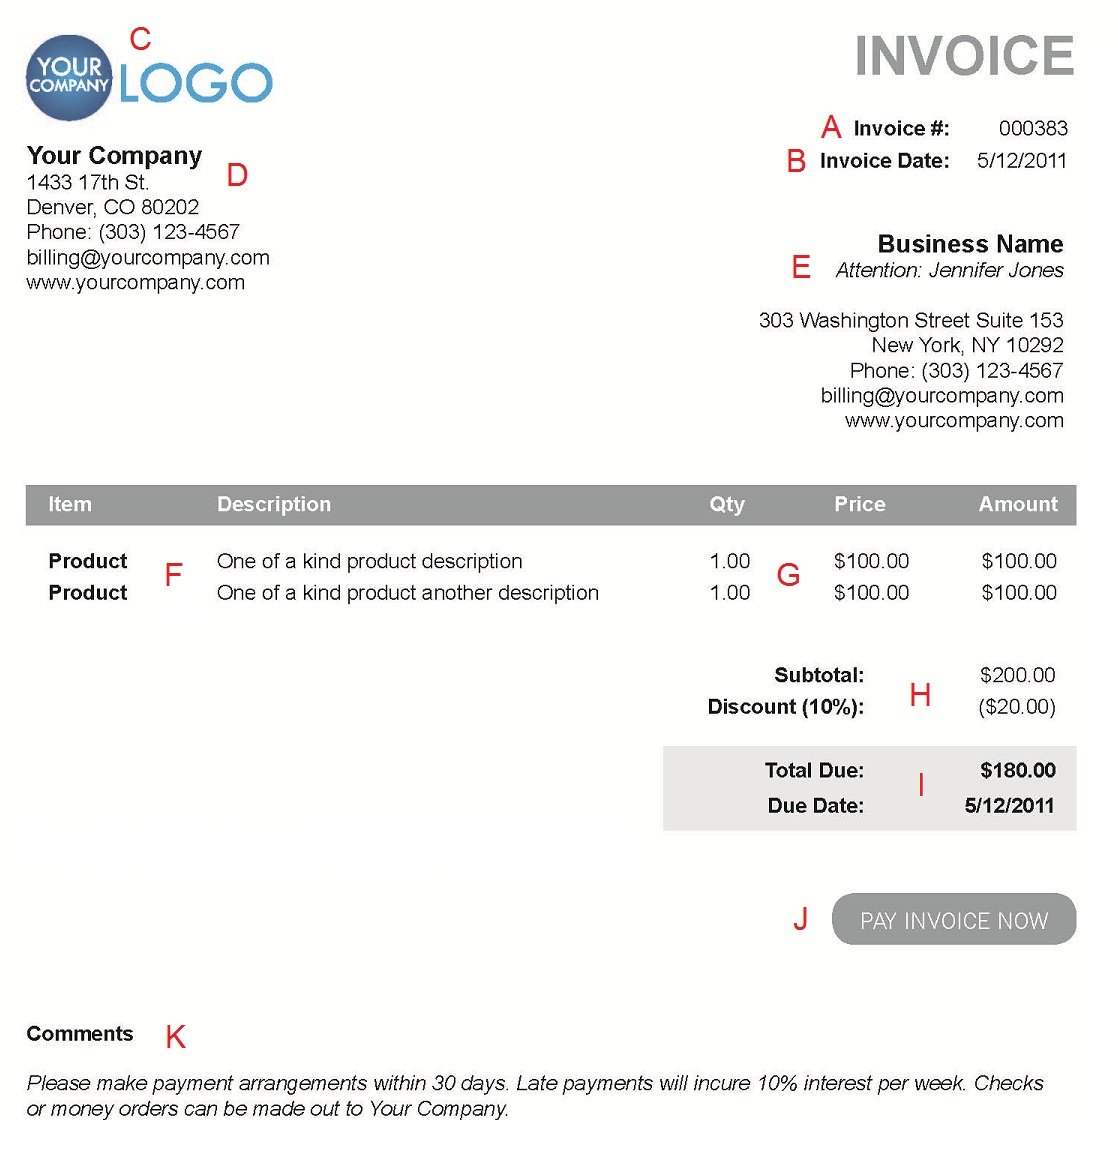 Centralasianshepherdus  Picturesque The  Different Sections Of An Electronic Payment Invoice With Fair A  With Awesome Paypal Buyer Protection Invoice Also Paypal Invoice Logo In Addition Requesting Payment For Overdue Invoice And How To Create An Invoice In Quickbooks As Well As Ntta Org Pay Invoice Additionally Edifact Invoic From Paysimplecom With Centralasianshepherdus  Fair The  Different Sections Of An Electronic Payment Invoice With Awesome A  And Picturesque Paypal Buyer Protection Invoice Also Paypal Invoice Logo In Addition Requesting Payment For Overdue Invoice From Paysimplecom